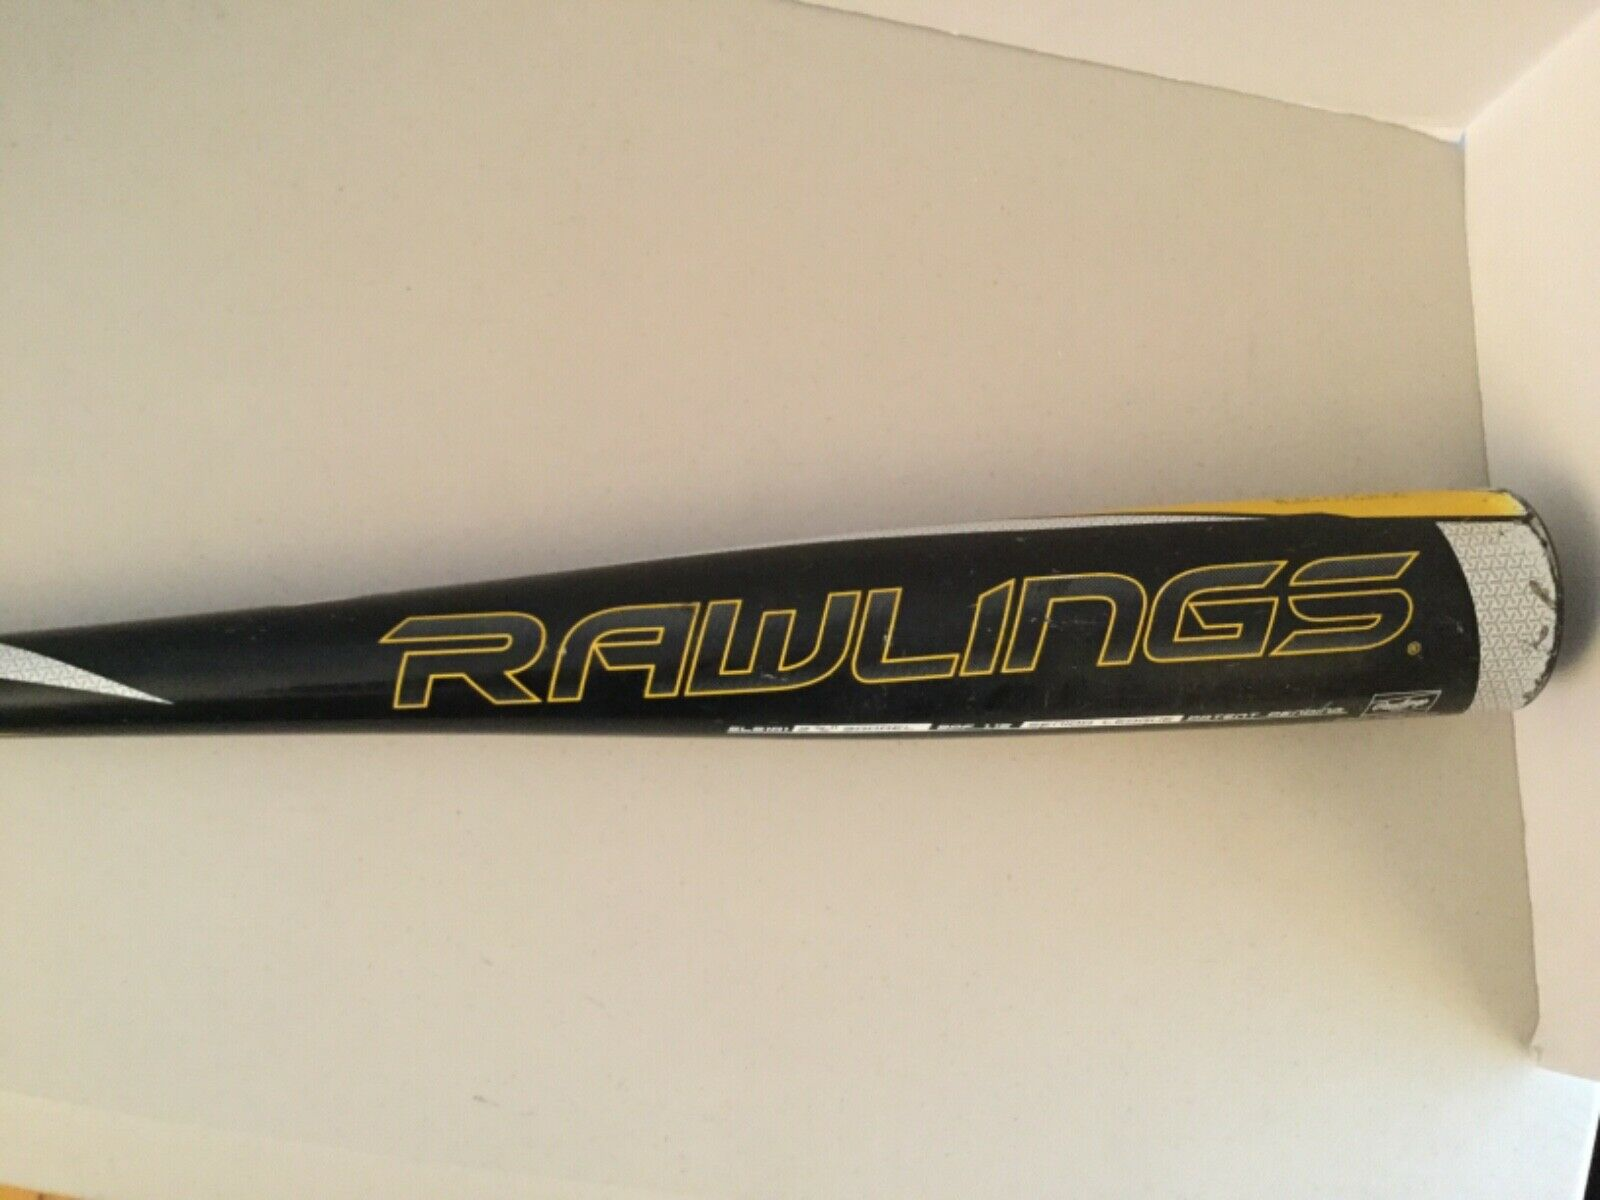 "RAWLINGS 5150 BASEBALL BAT SL51A1 31"" 21 oz (-10)  2 5 8"""